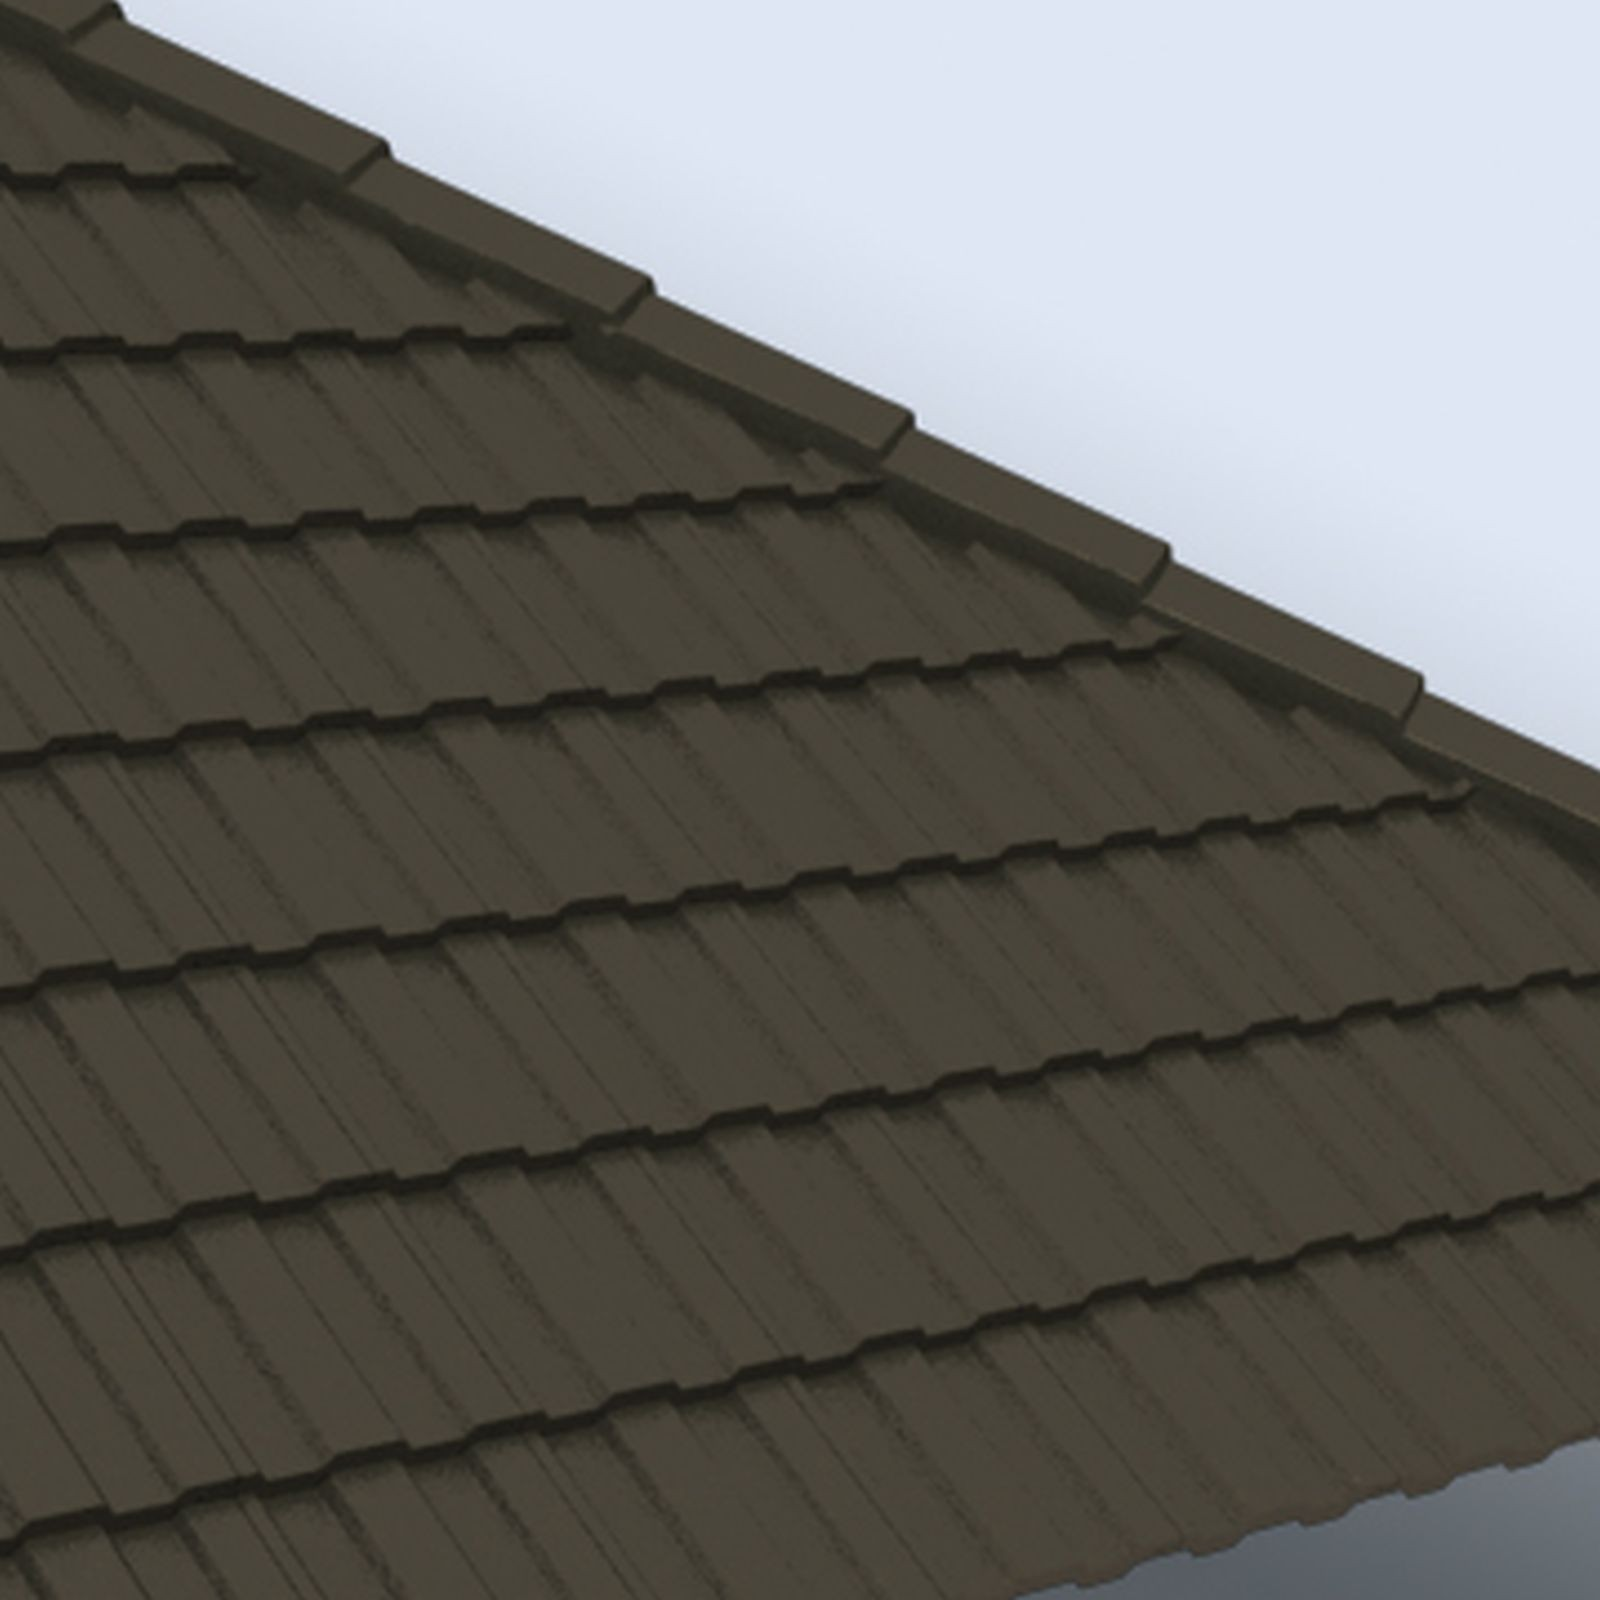 Slimline Concrete Roof Tiles Nsw Design Content